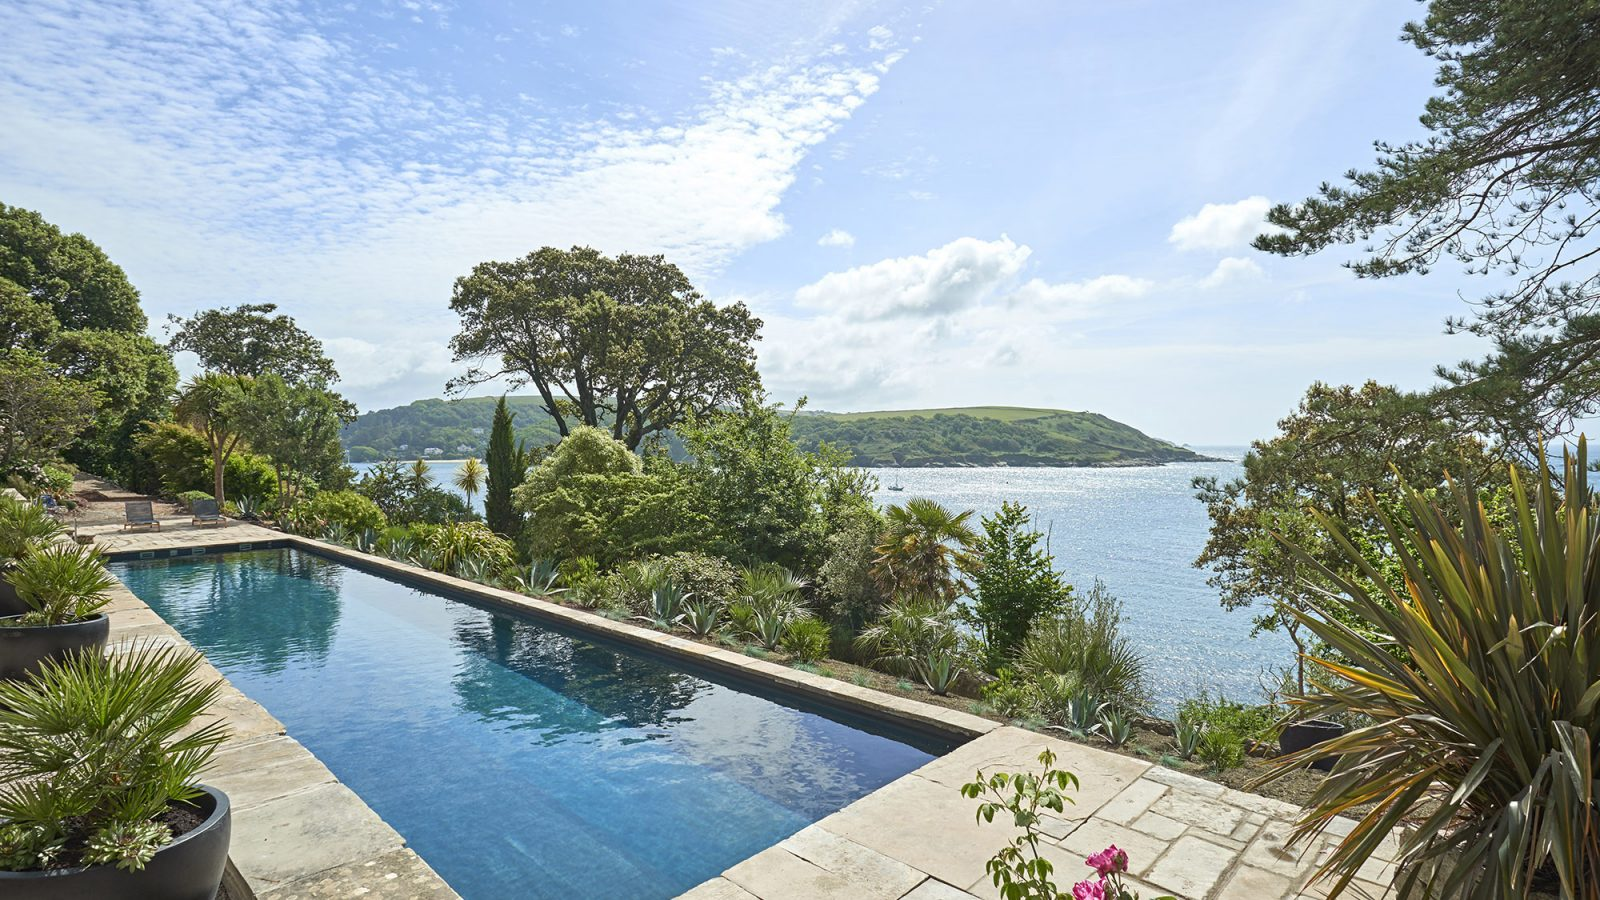 The moult kate tom 39 s for Lake district cottages with swimming pool